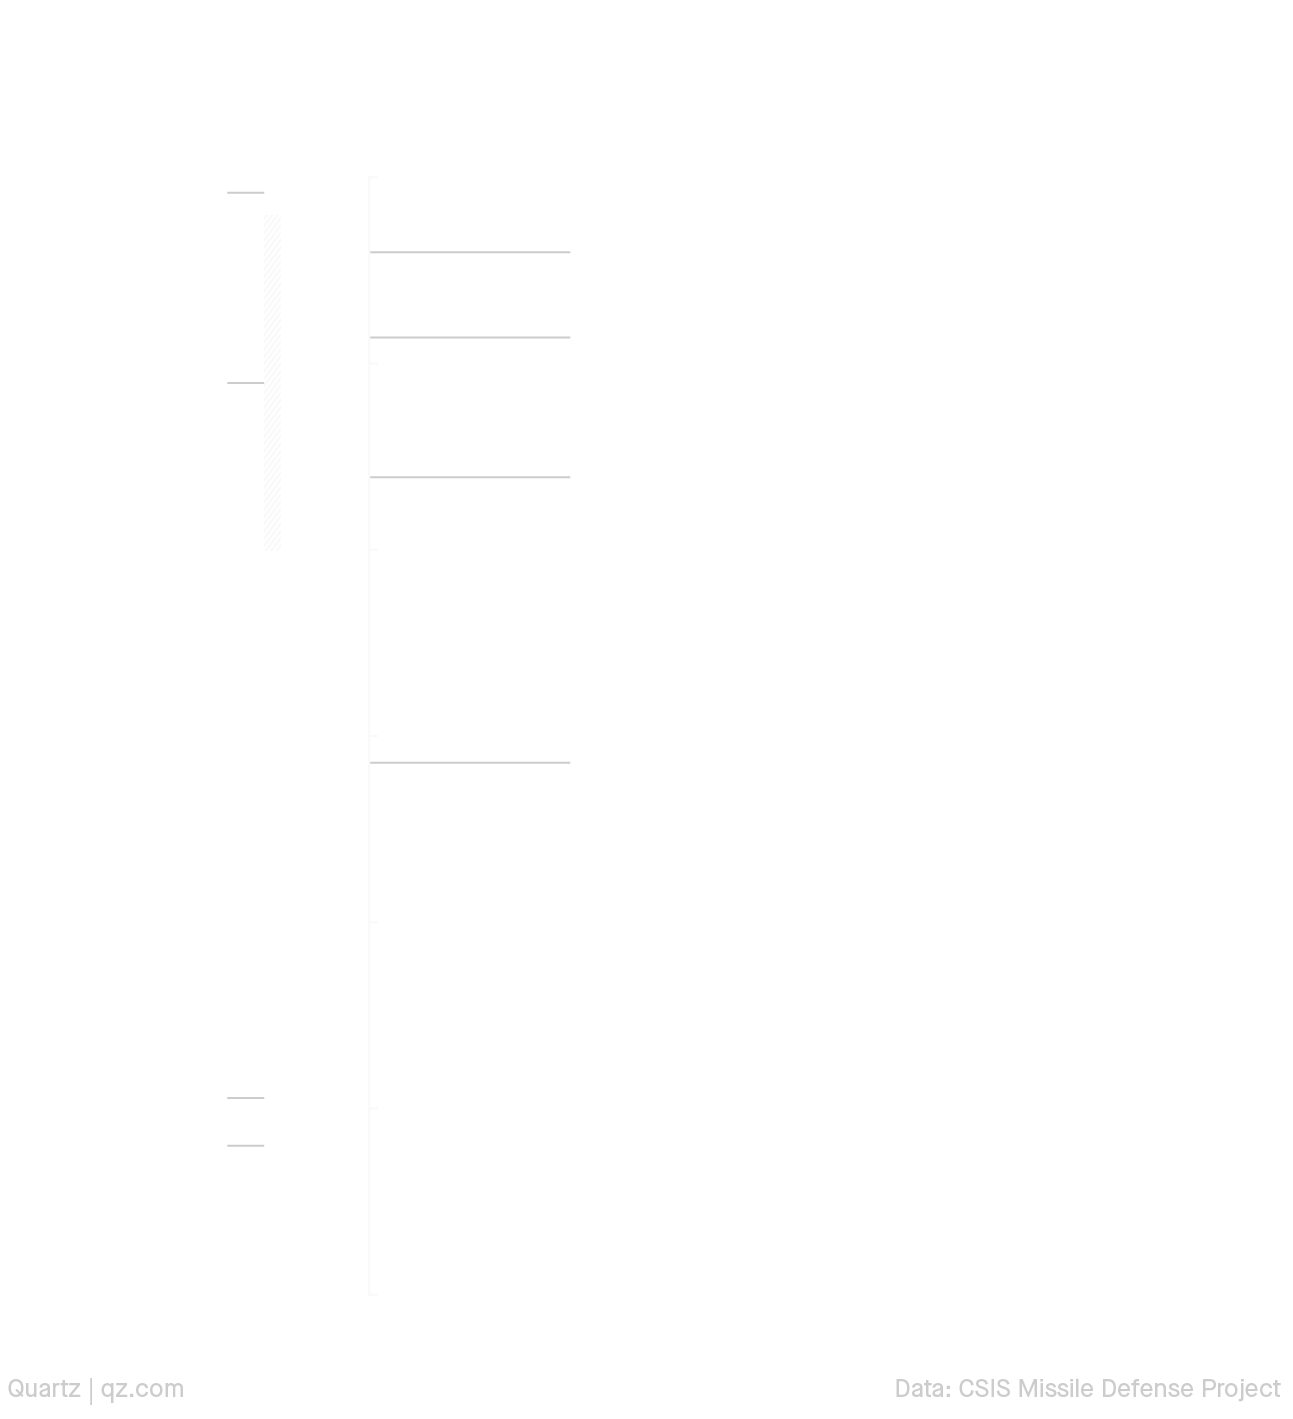 This chart shows the breadth of China's missile capabilities. Missile launches from mainland China can easily reach Taiwan, and now even the US. For comparison, American capabilities are also shown. As a signatory to the INF treaty, US missile range is restricted, creating a gap in capacity.